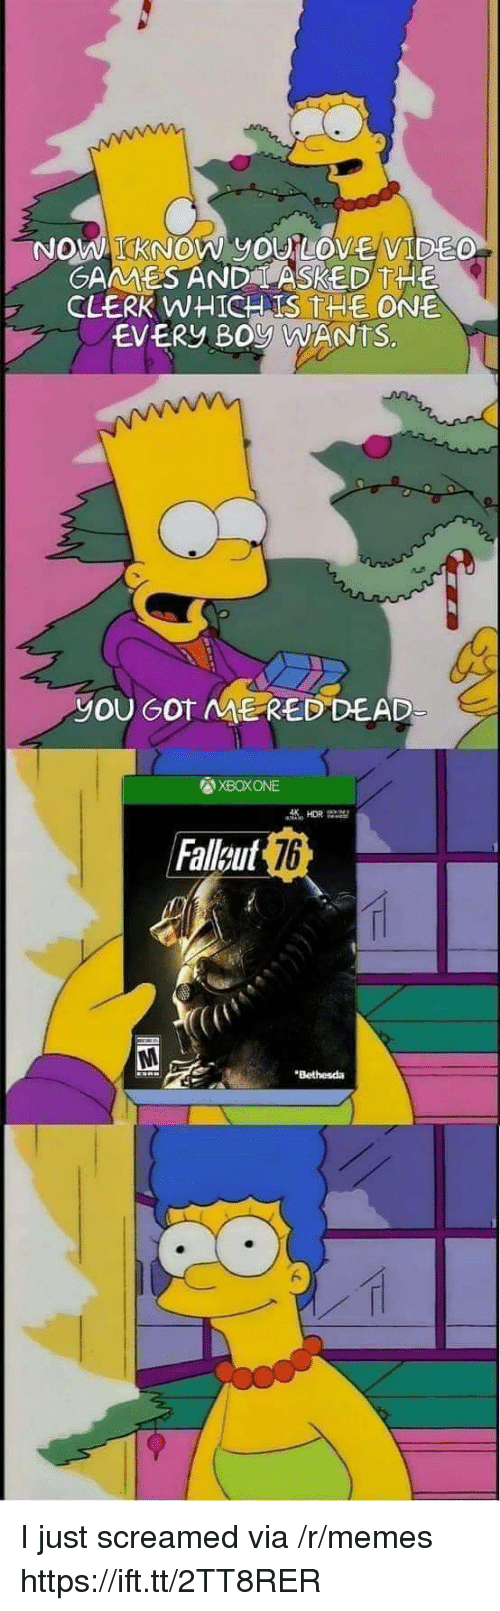 Love, Memes, and Boy: KNOW yOU LOVE VIDE  GAMMESAND LASKED THE  CLERK WHICH IS THE ONE  EVERY BOy WANTS.  yOU GOT ME RED DEAD  XBOXONE  Falleut  76  Bethesda I just screamed via /r/memes https://ift.tt/2TT8RER